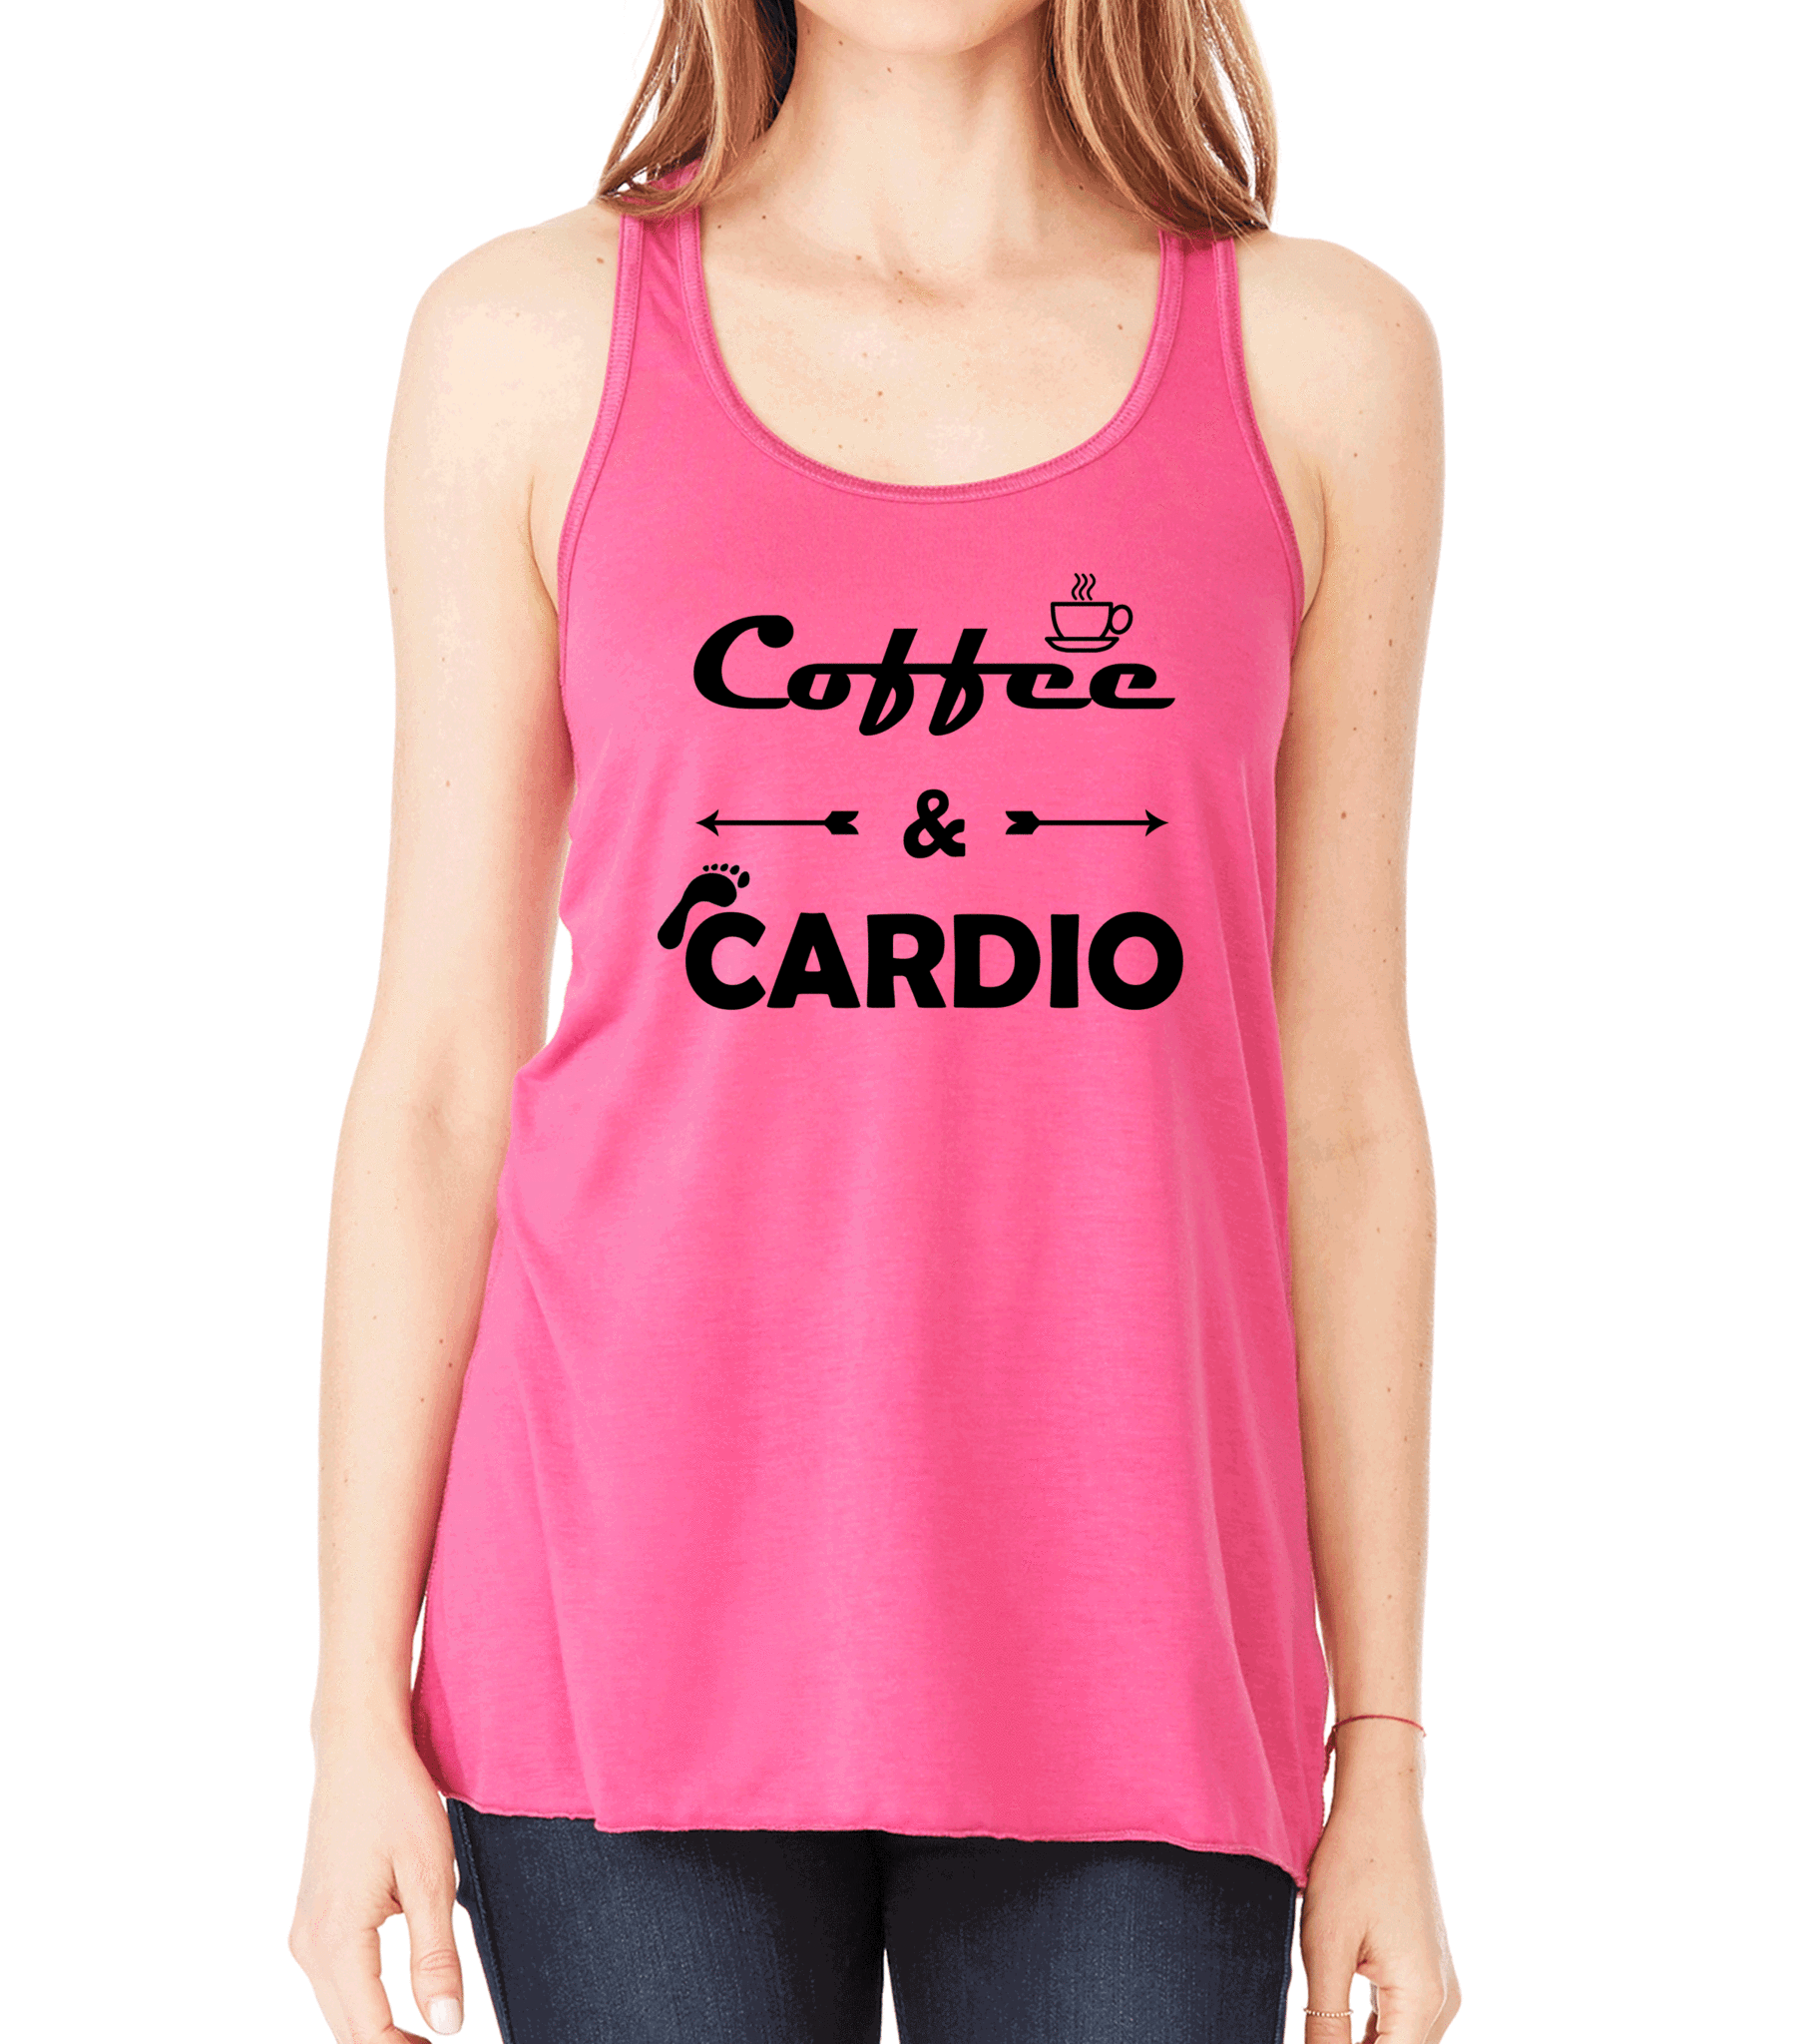 b1a45ee770f5e Coffee   Cardio Womens Flowy Workout Tank Top. Fitness Motivation. Running  Tank Top.